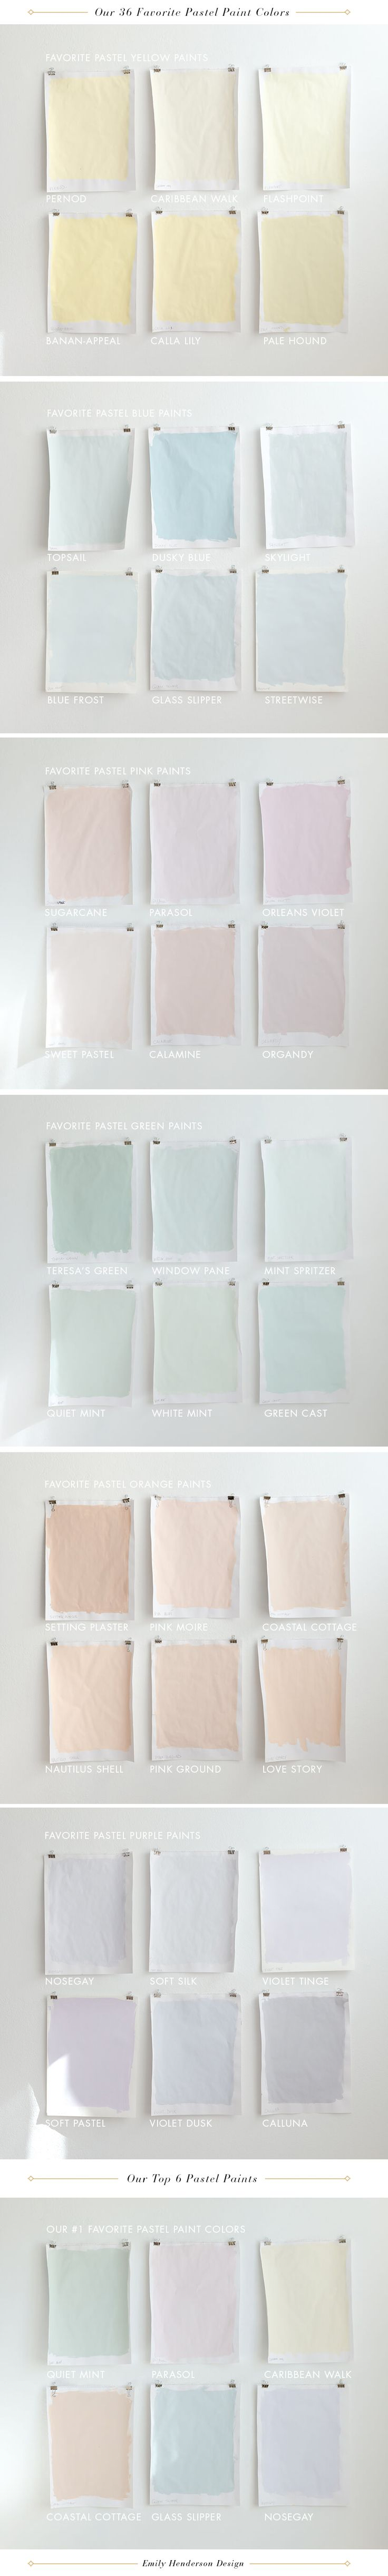 Emily Hendersons  All Time Favorite Pastel Paints For The Home